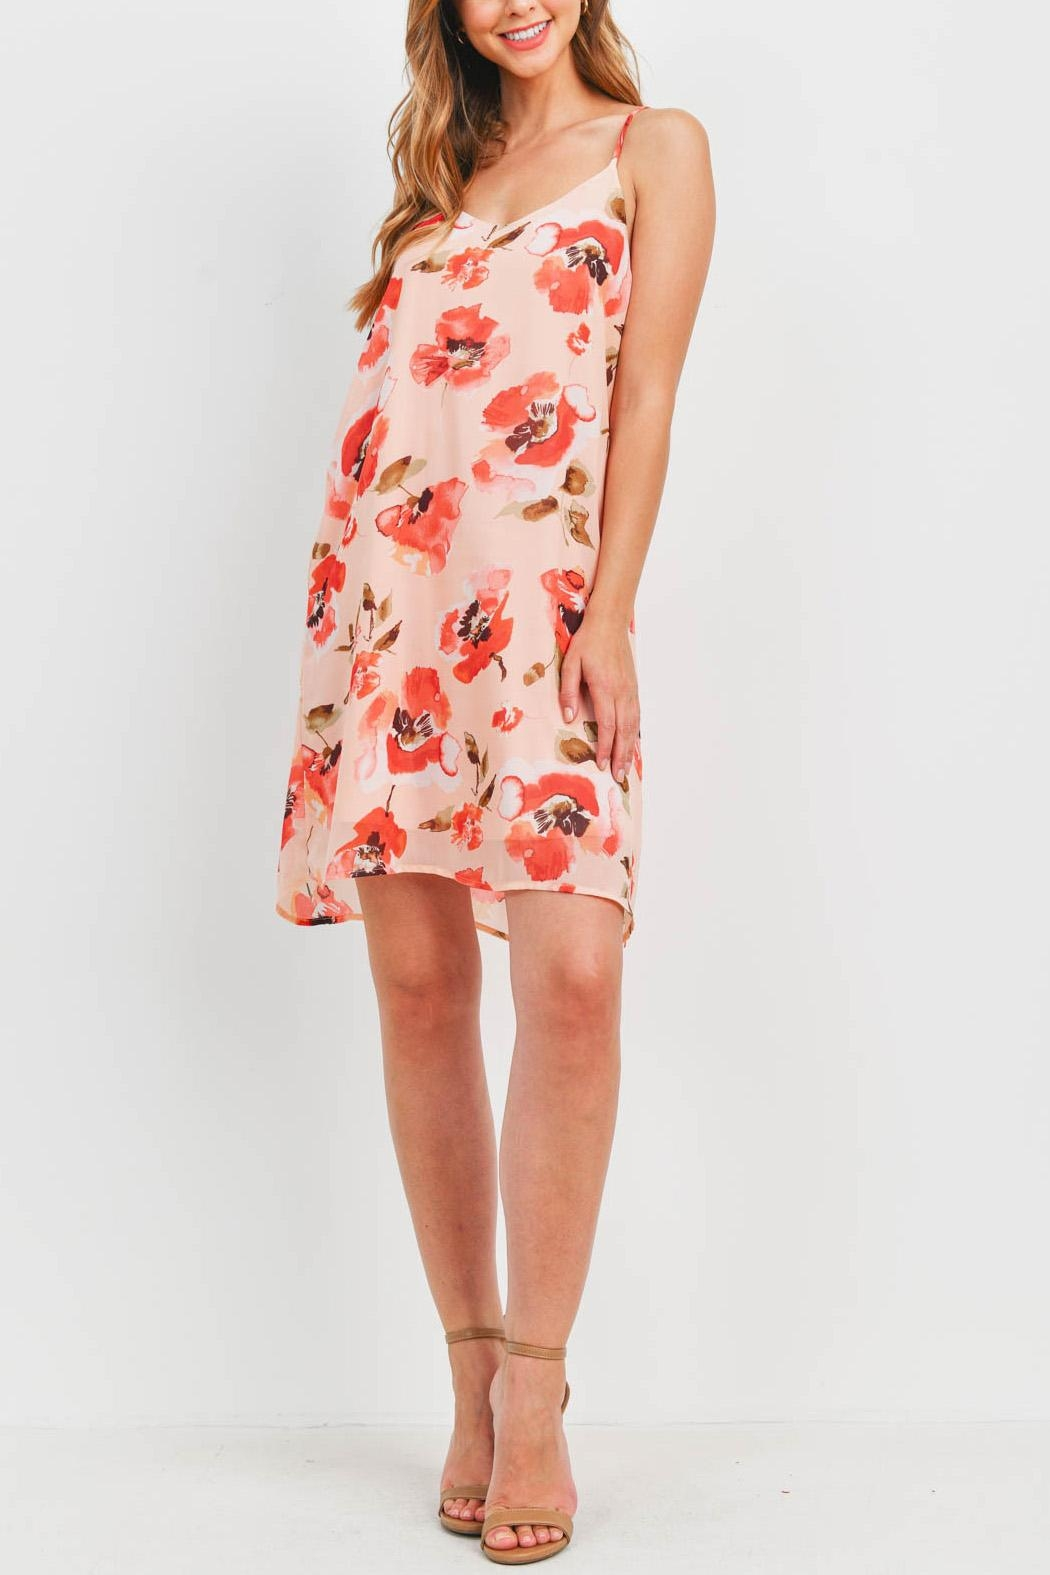 Riah Fashion Spaghetti-Straps-Floral-Print-Dress-With-Inside-Lining - Side Cropped Image